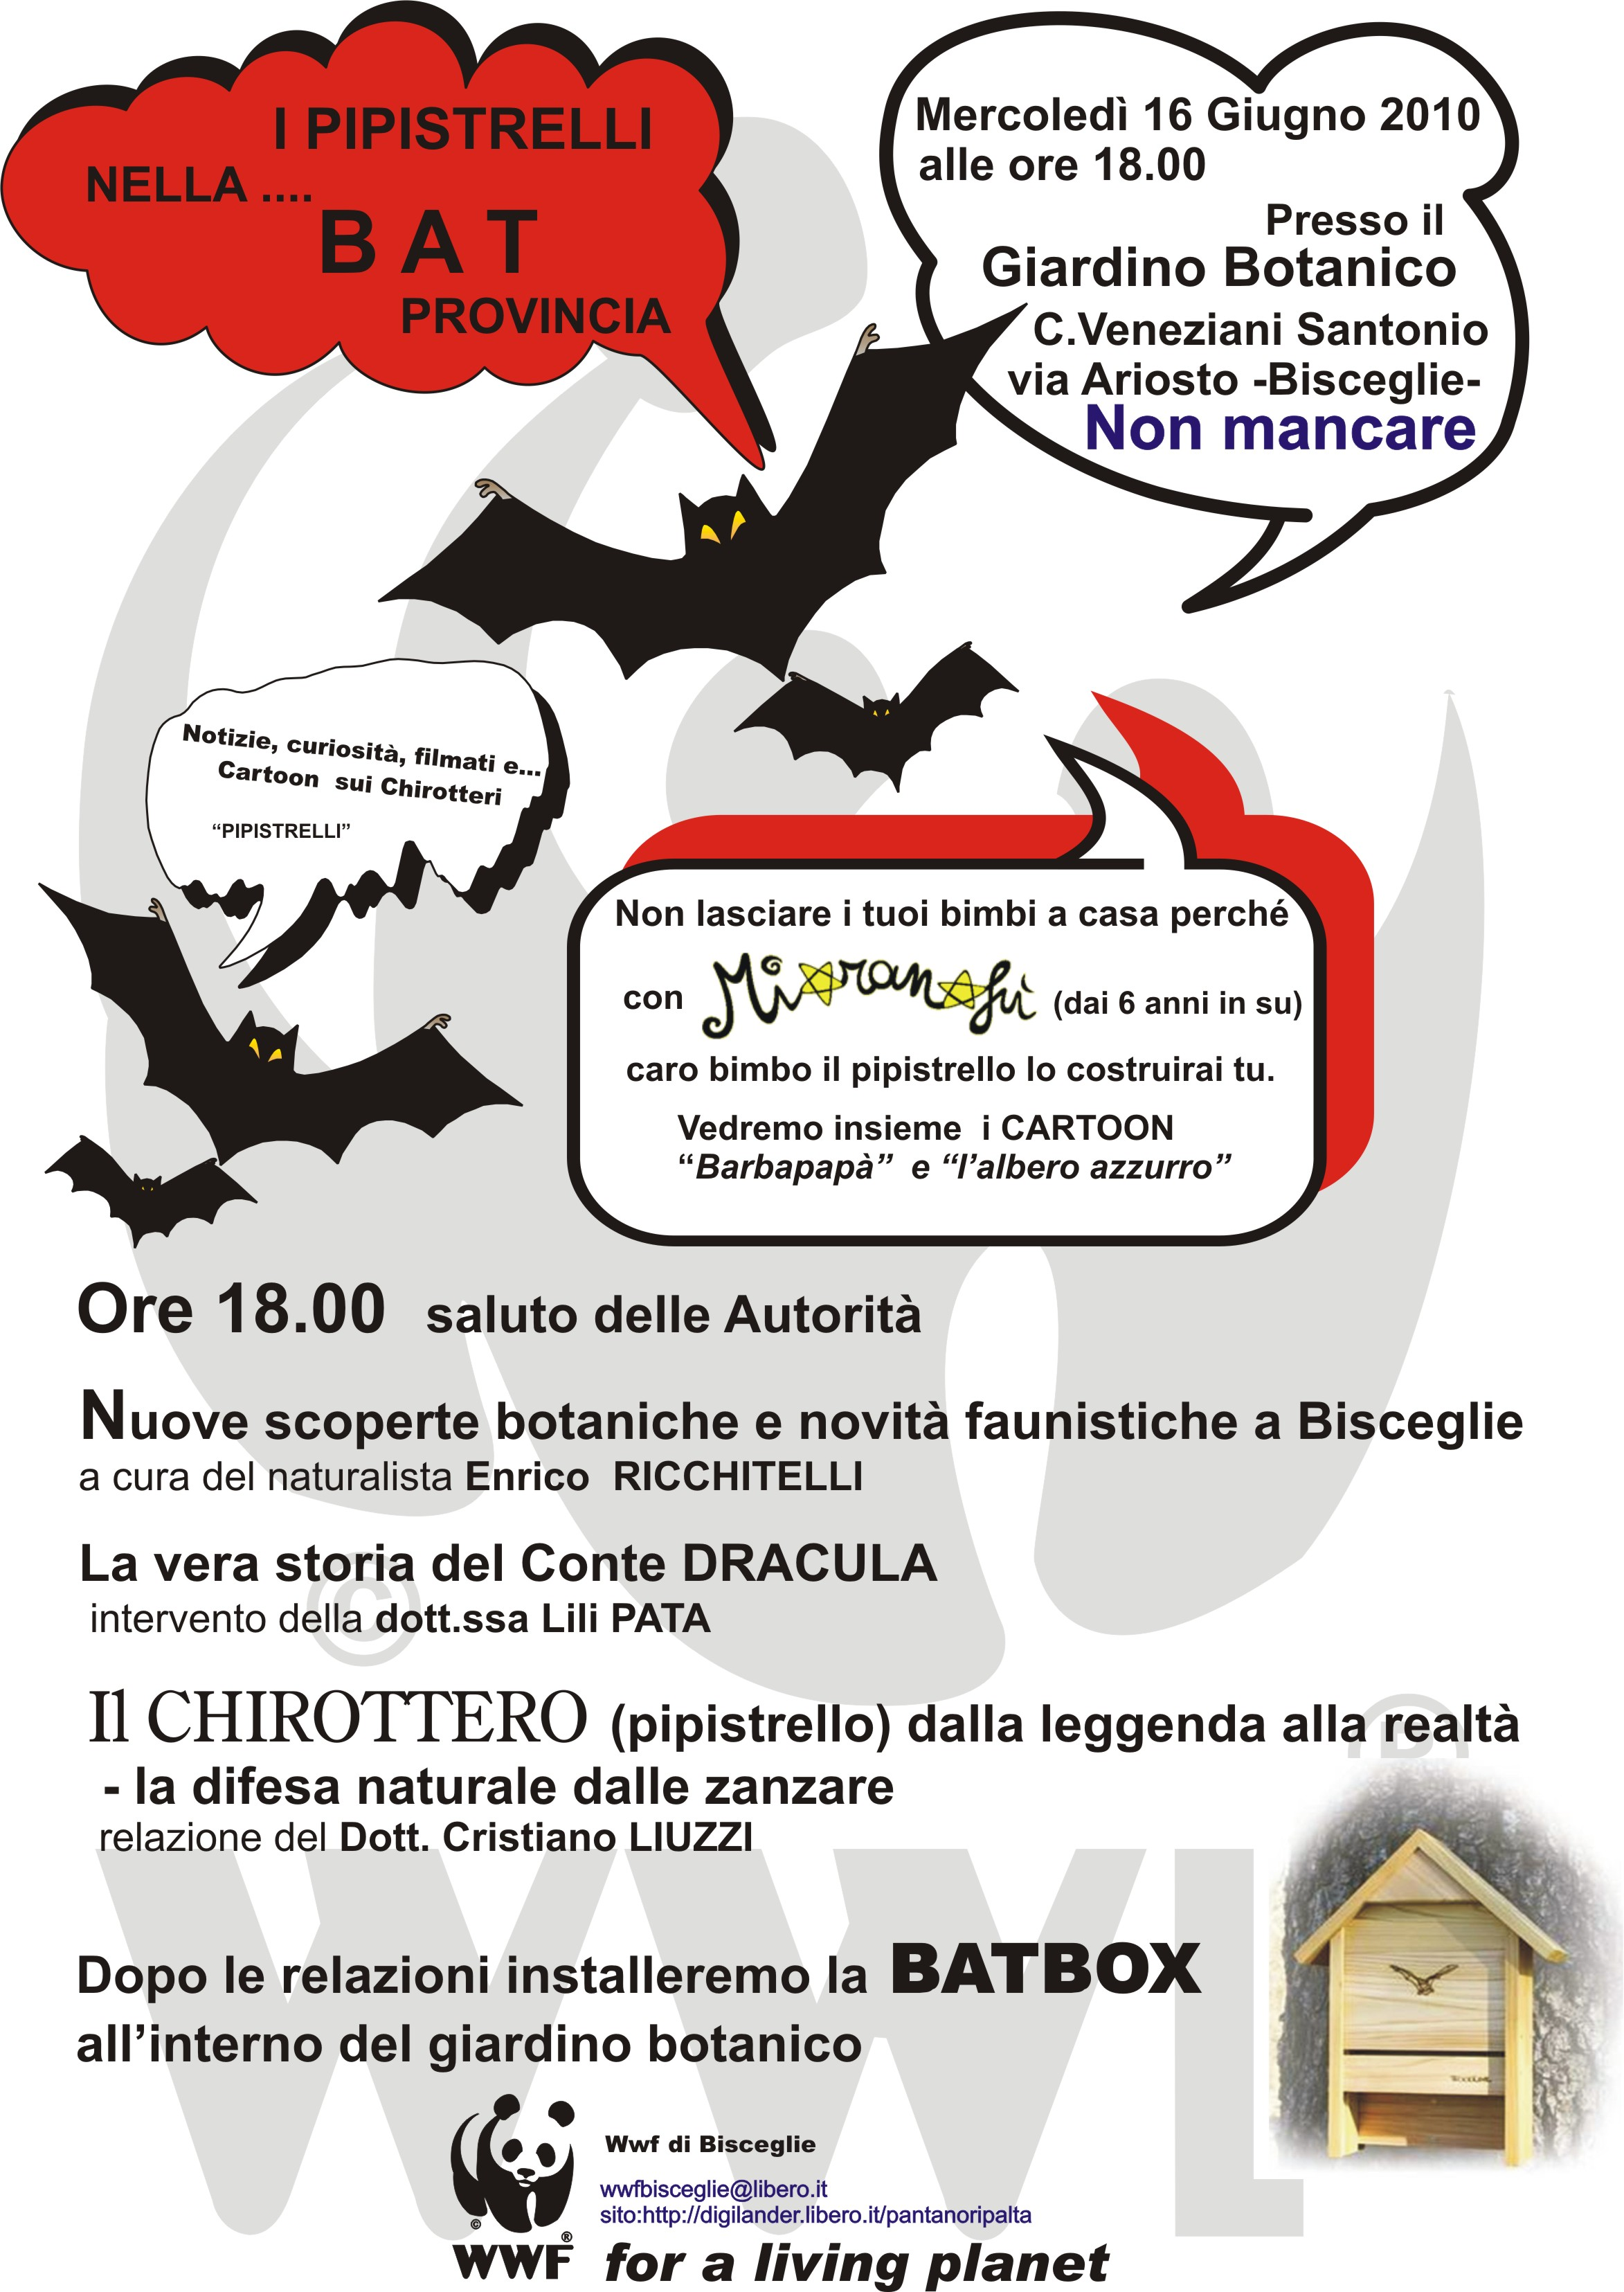 I pipistrelli nella bat provincia for Laghetto artificiale zanzare